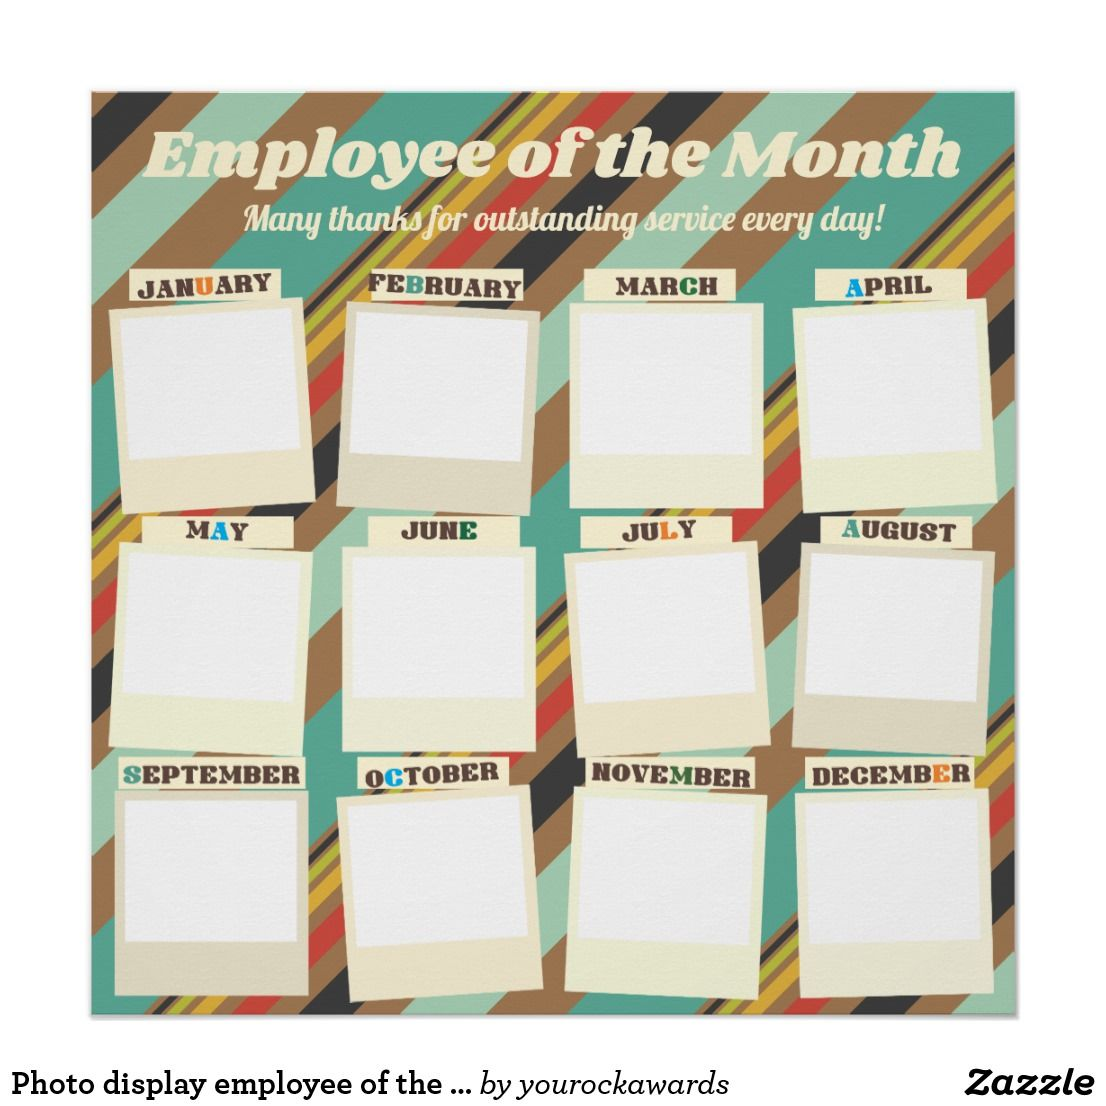 Photo Display Employee Of The Month Recognition Poster Zazzle Com Incentives For Employees Employee Recognition Board Employee Recognition Employee of the month photo